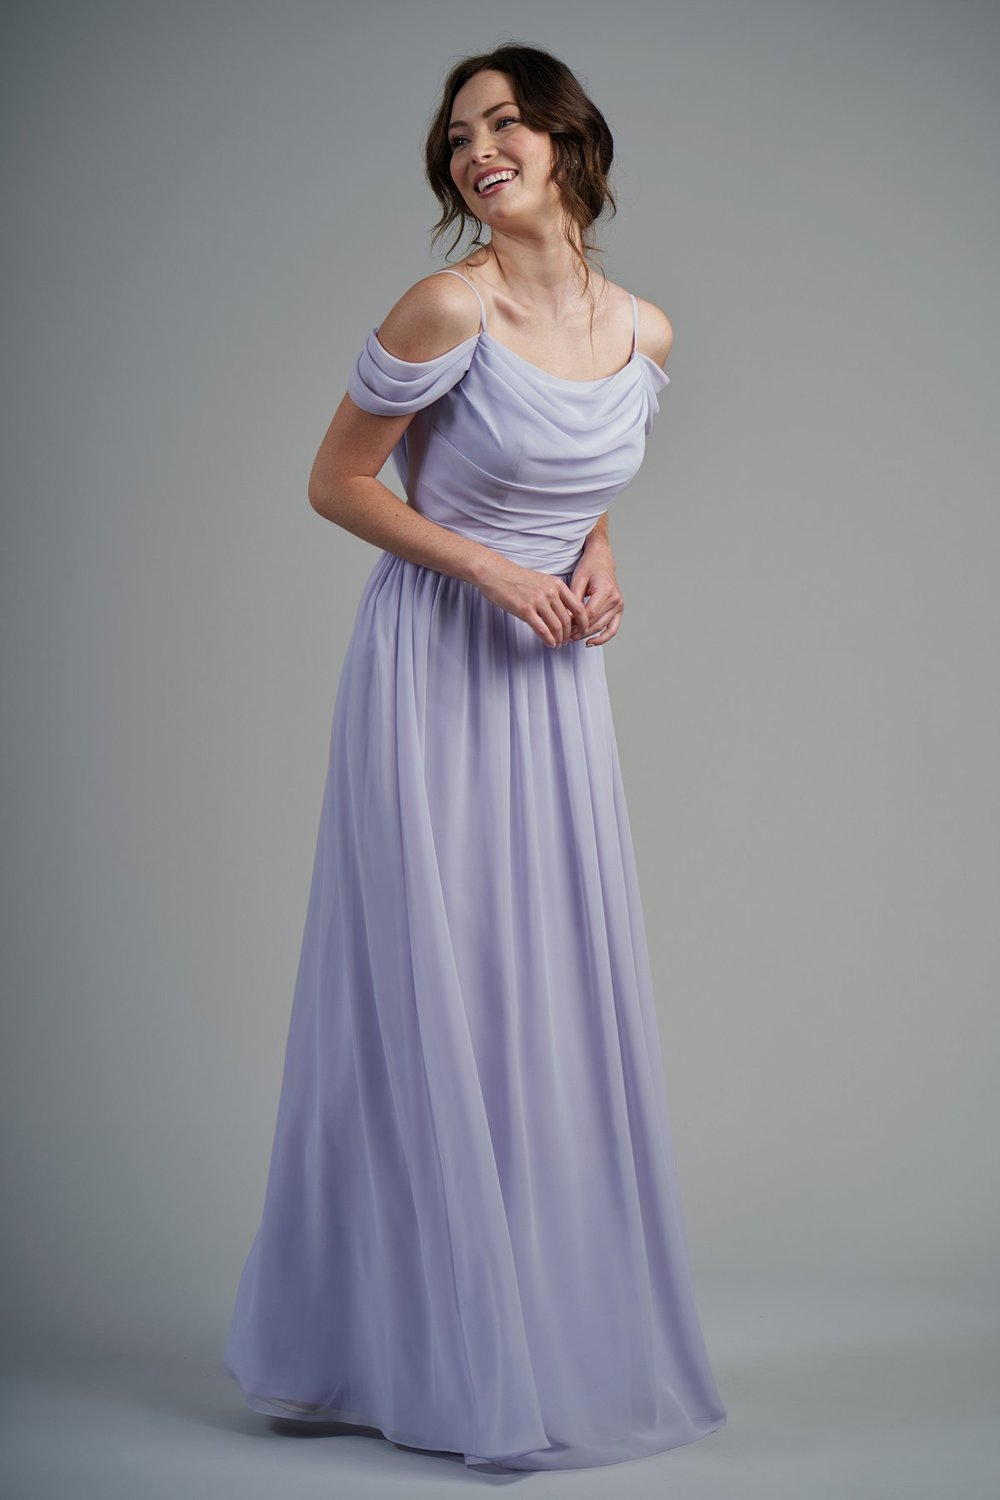 B213003 -  Beautiful poly chiffon floor length bridesmaid dress with a beautiful scoop neckline and spaghetti straps. Detailed gathers on the skirt, bodice, and fabric around the arm for a whimsical bridesmaid look.    Available in 60 colors